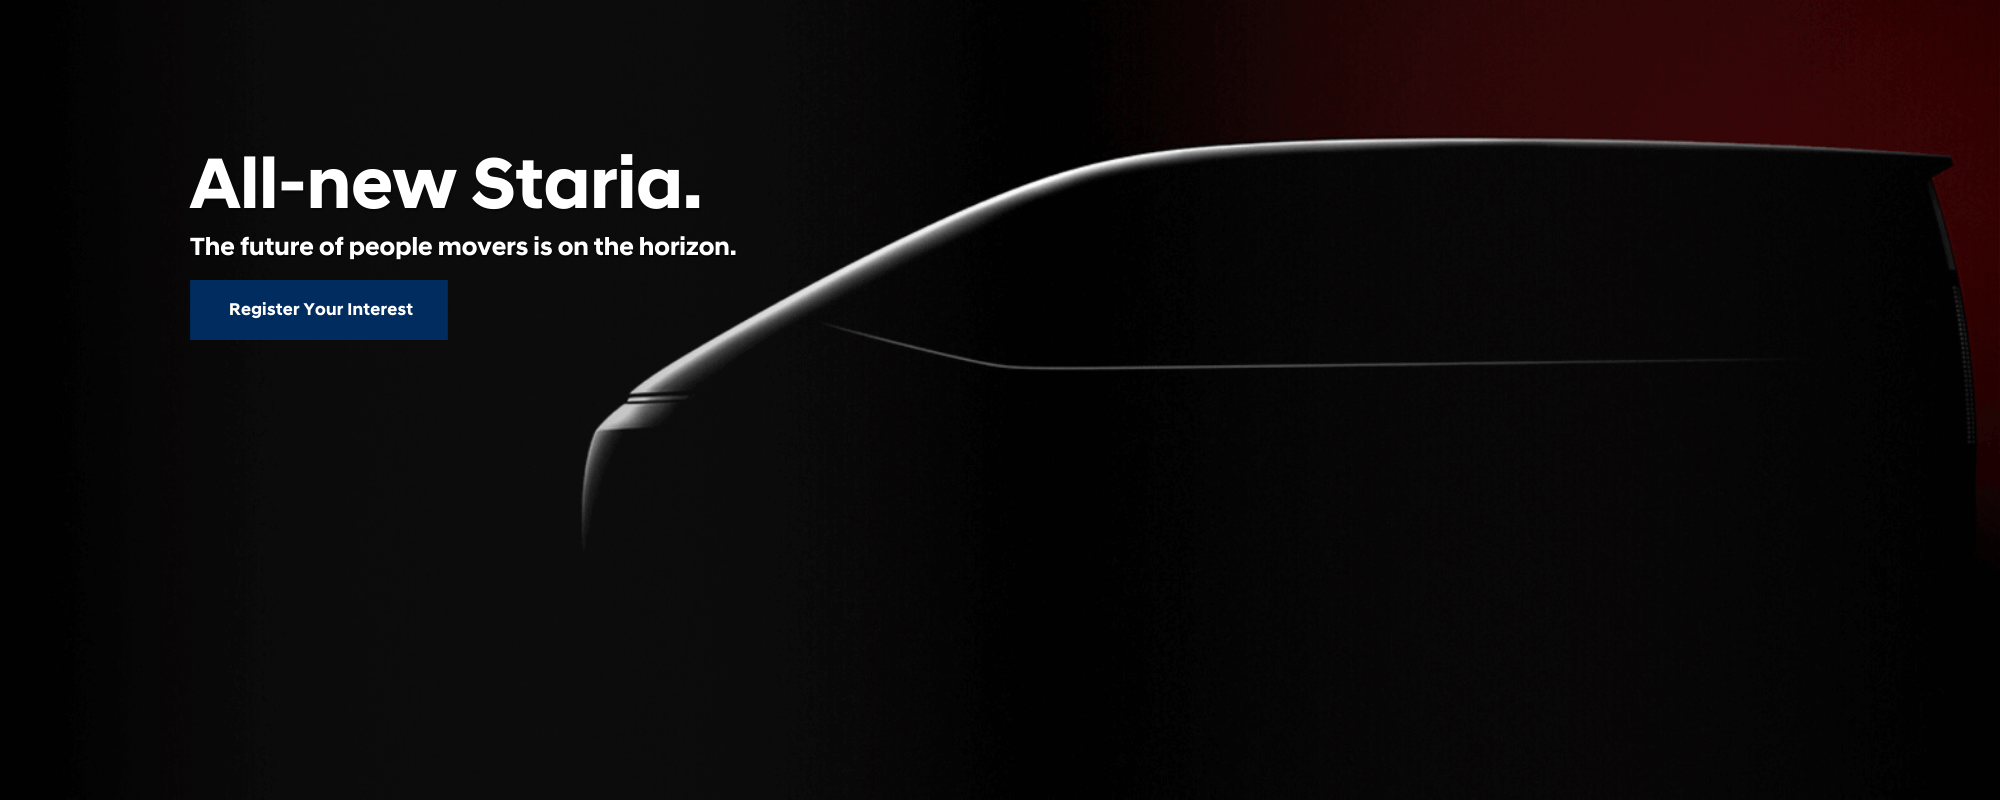 Coming Soon: Hyundai STARIA. The future of people movers is on the horizon.